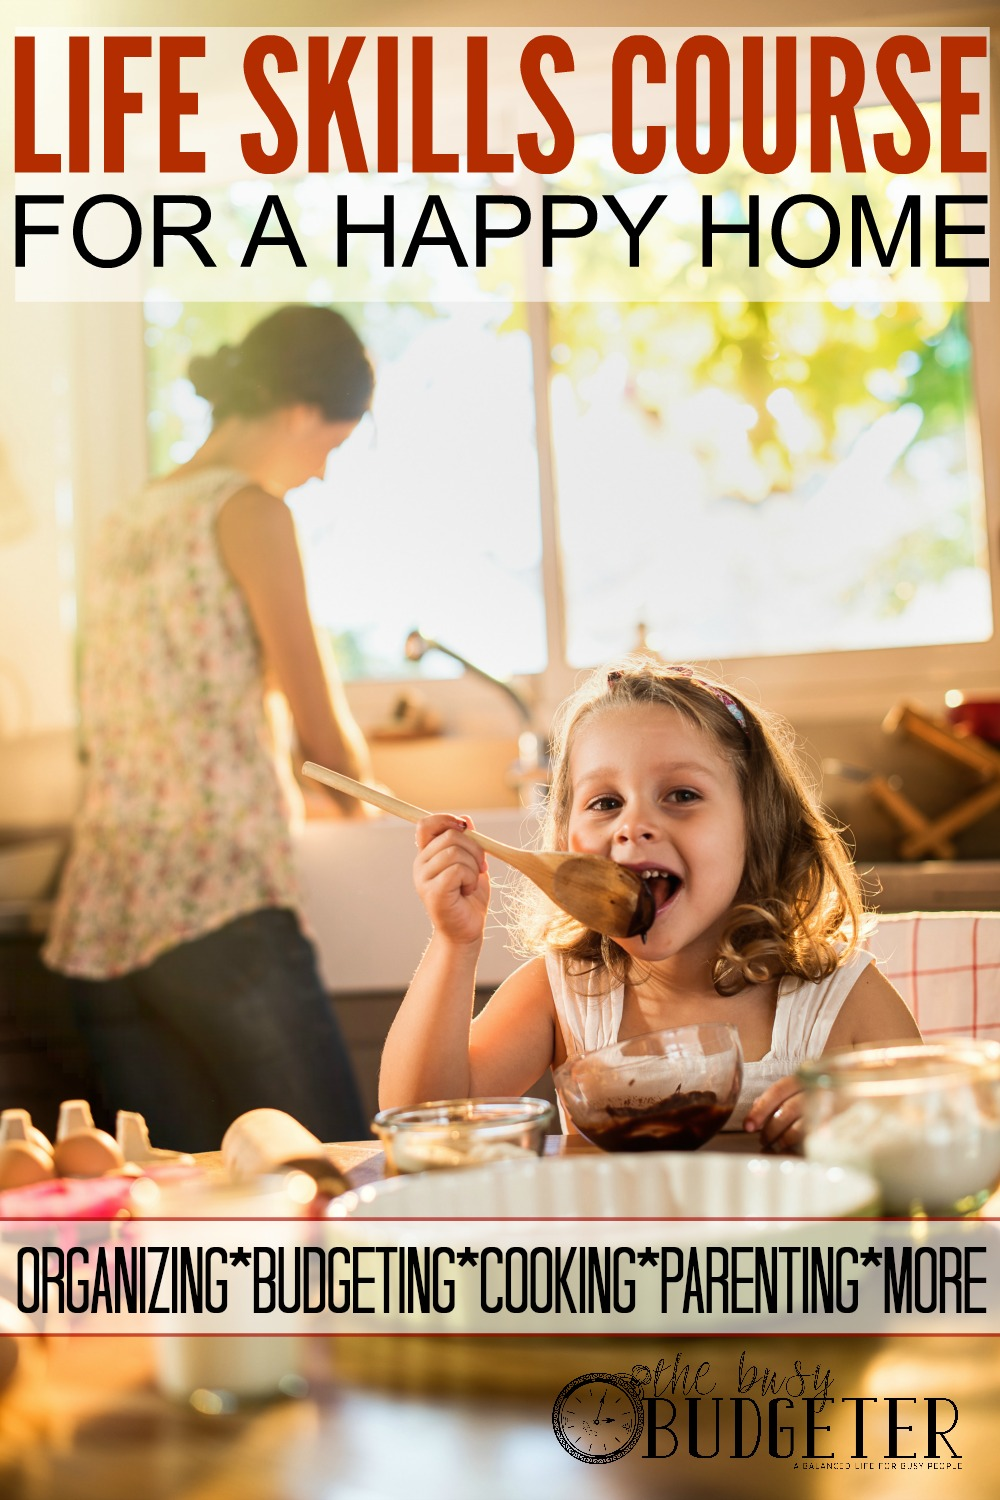 Life Skills Course For A Happy Home: Genius! I always felt like I MISSED SOMETHING that was supposed to teach me all these skills to be the perfect wife, mom, person, etc. Now I know I'm not the only one who felt like that! These courses actually look fun too!